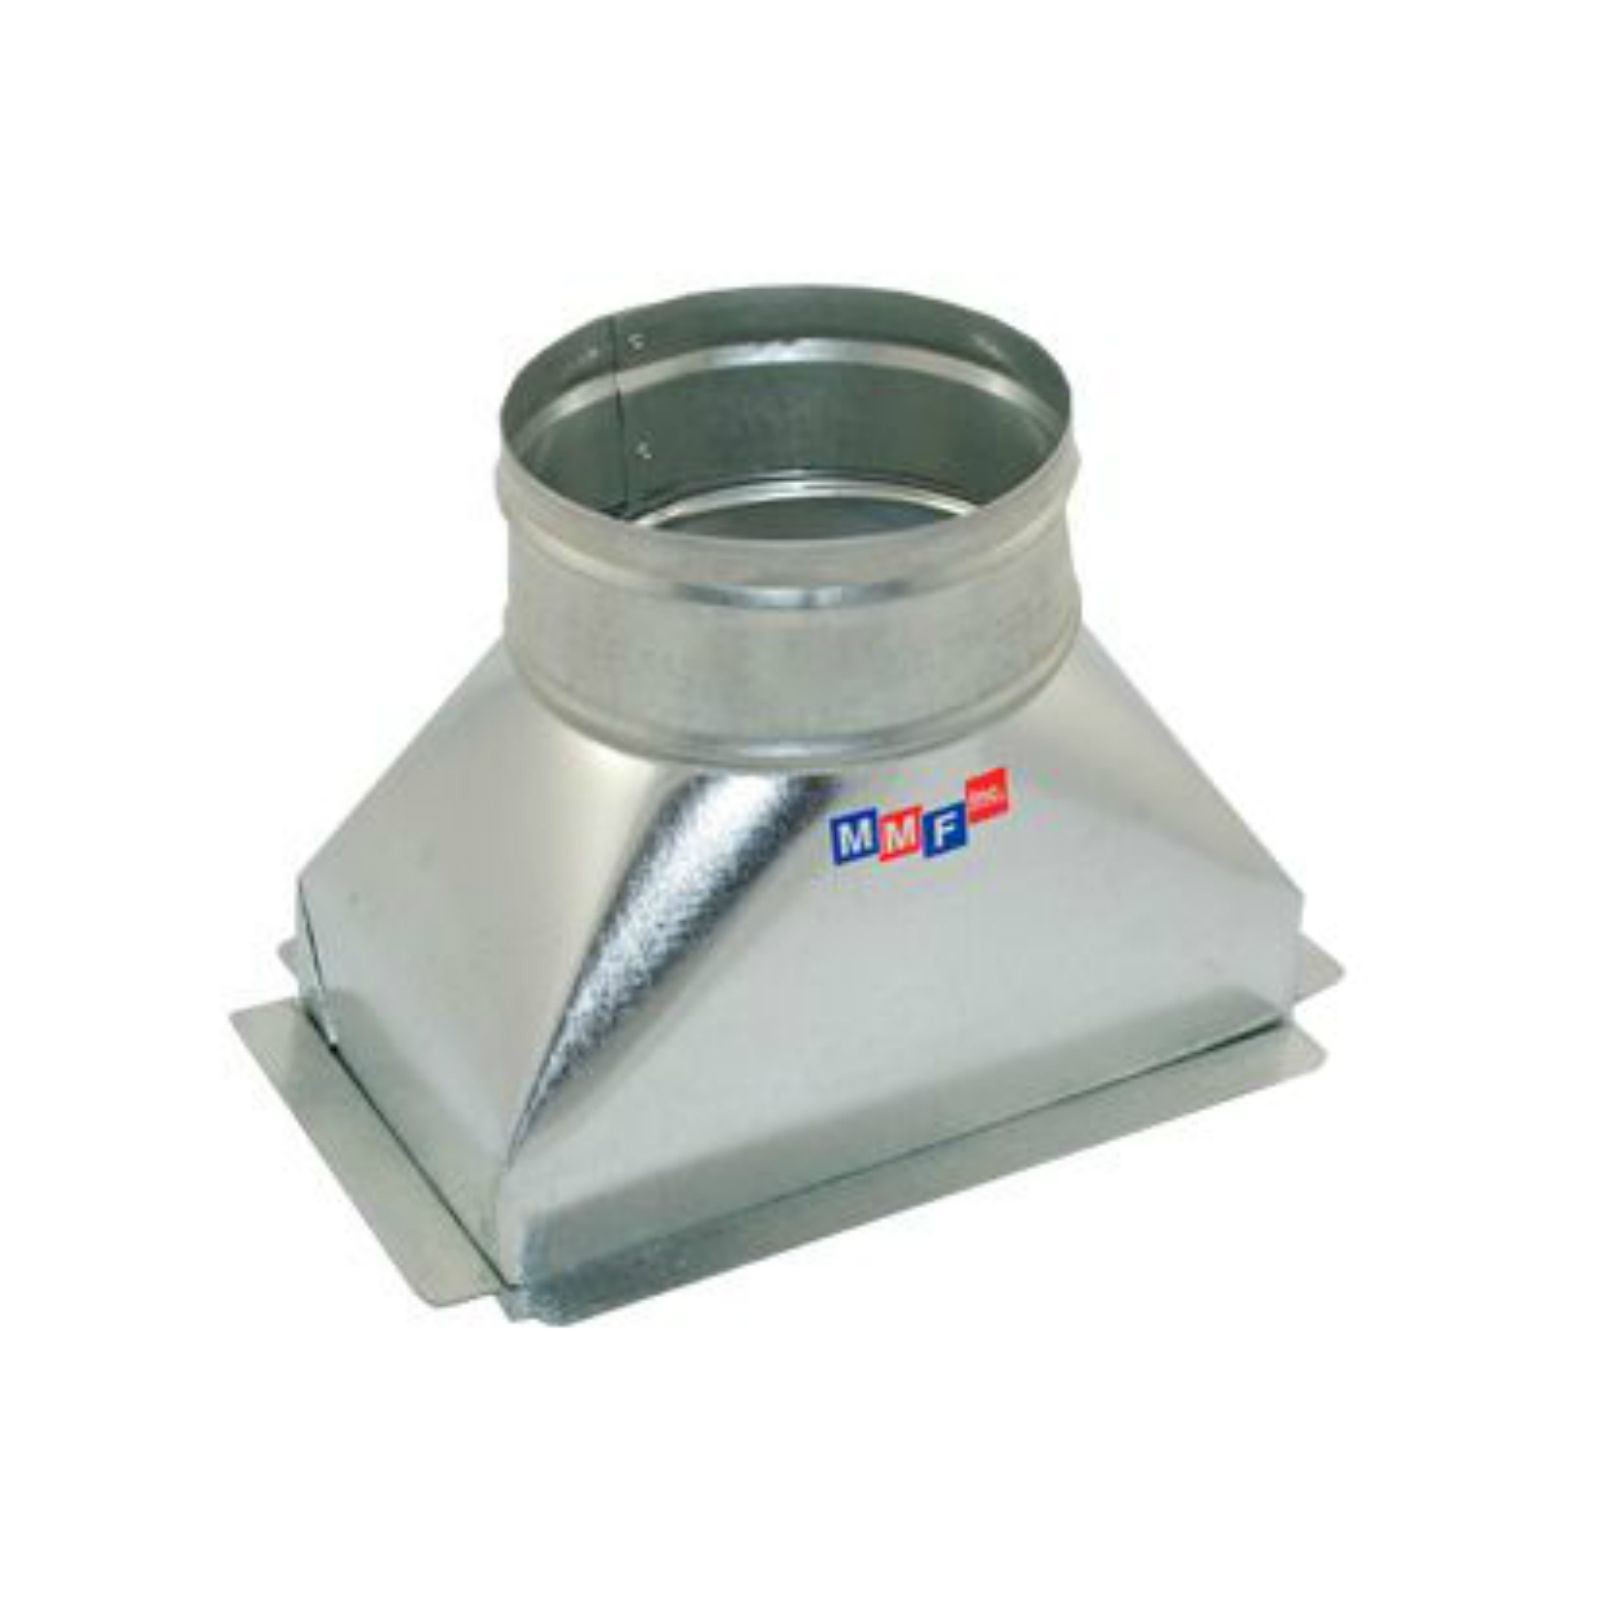 "Modular Metal BTSFG100607P - Sealed Floor Box - 30 Gauge - With Plaster Ground Flange 10"" X 06"" To 07"" Round"